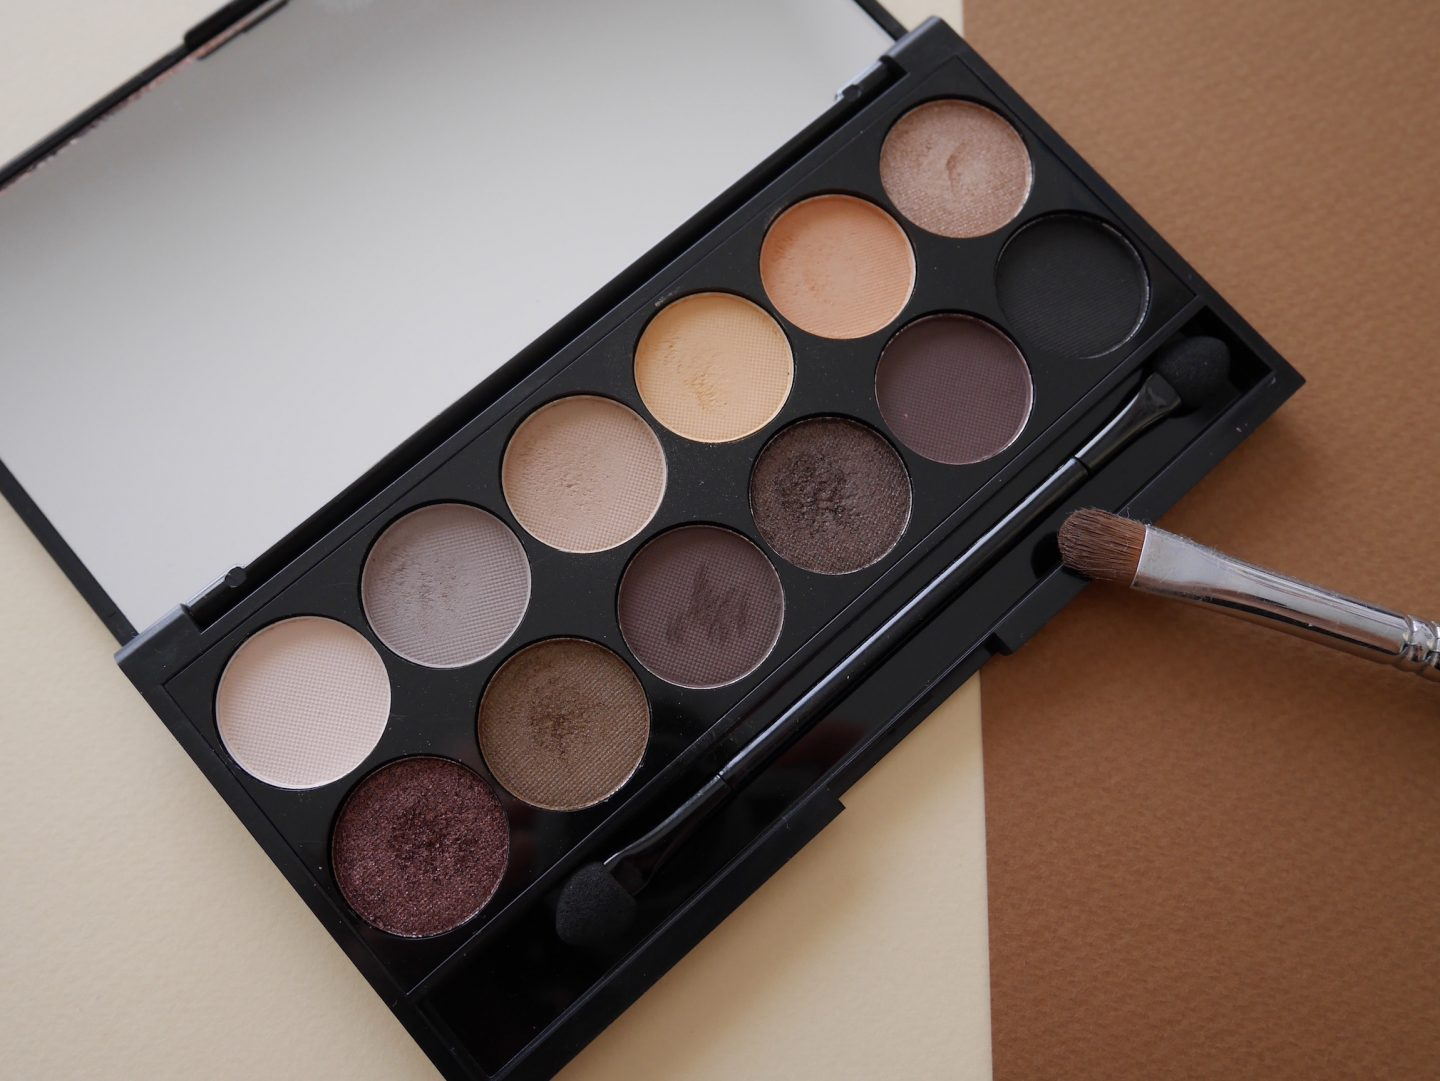 Tuto video : la Palette i-Divine Au Naturel de Sleek